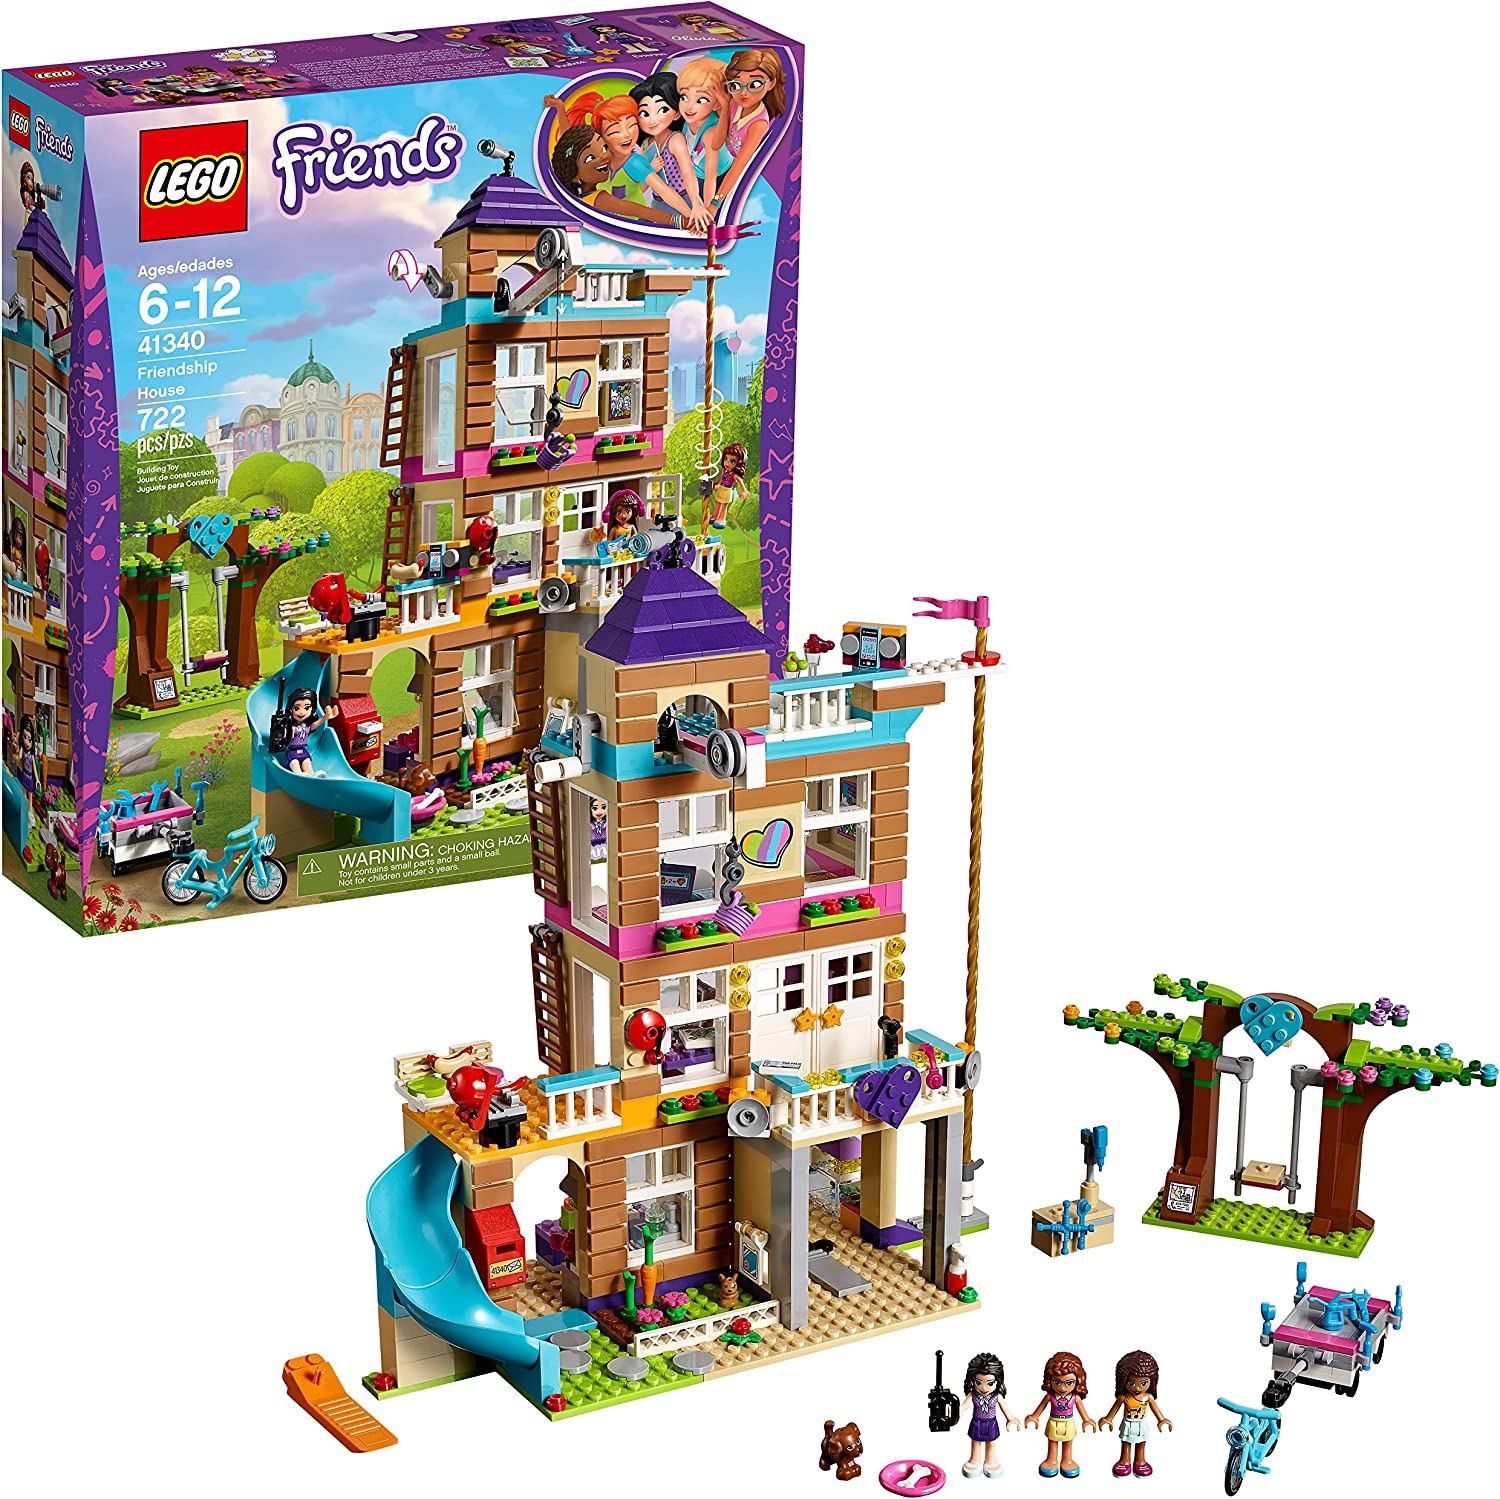 LEGO Friends Friendship House 41340 Kids Building Set with Mini-Doll Figures  Popular Toy and Gift for Girls  722 Piece